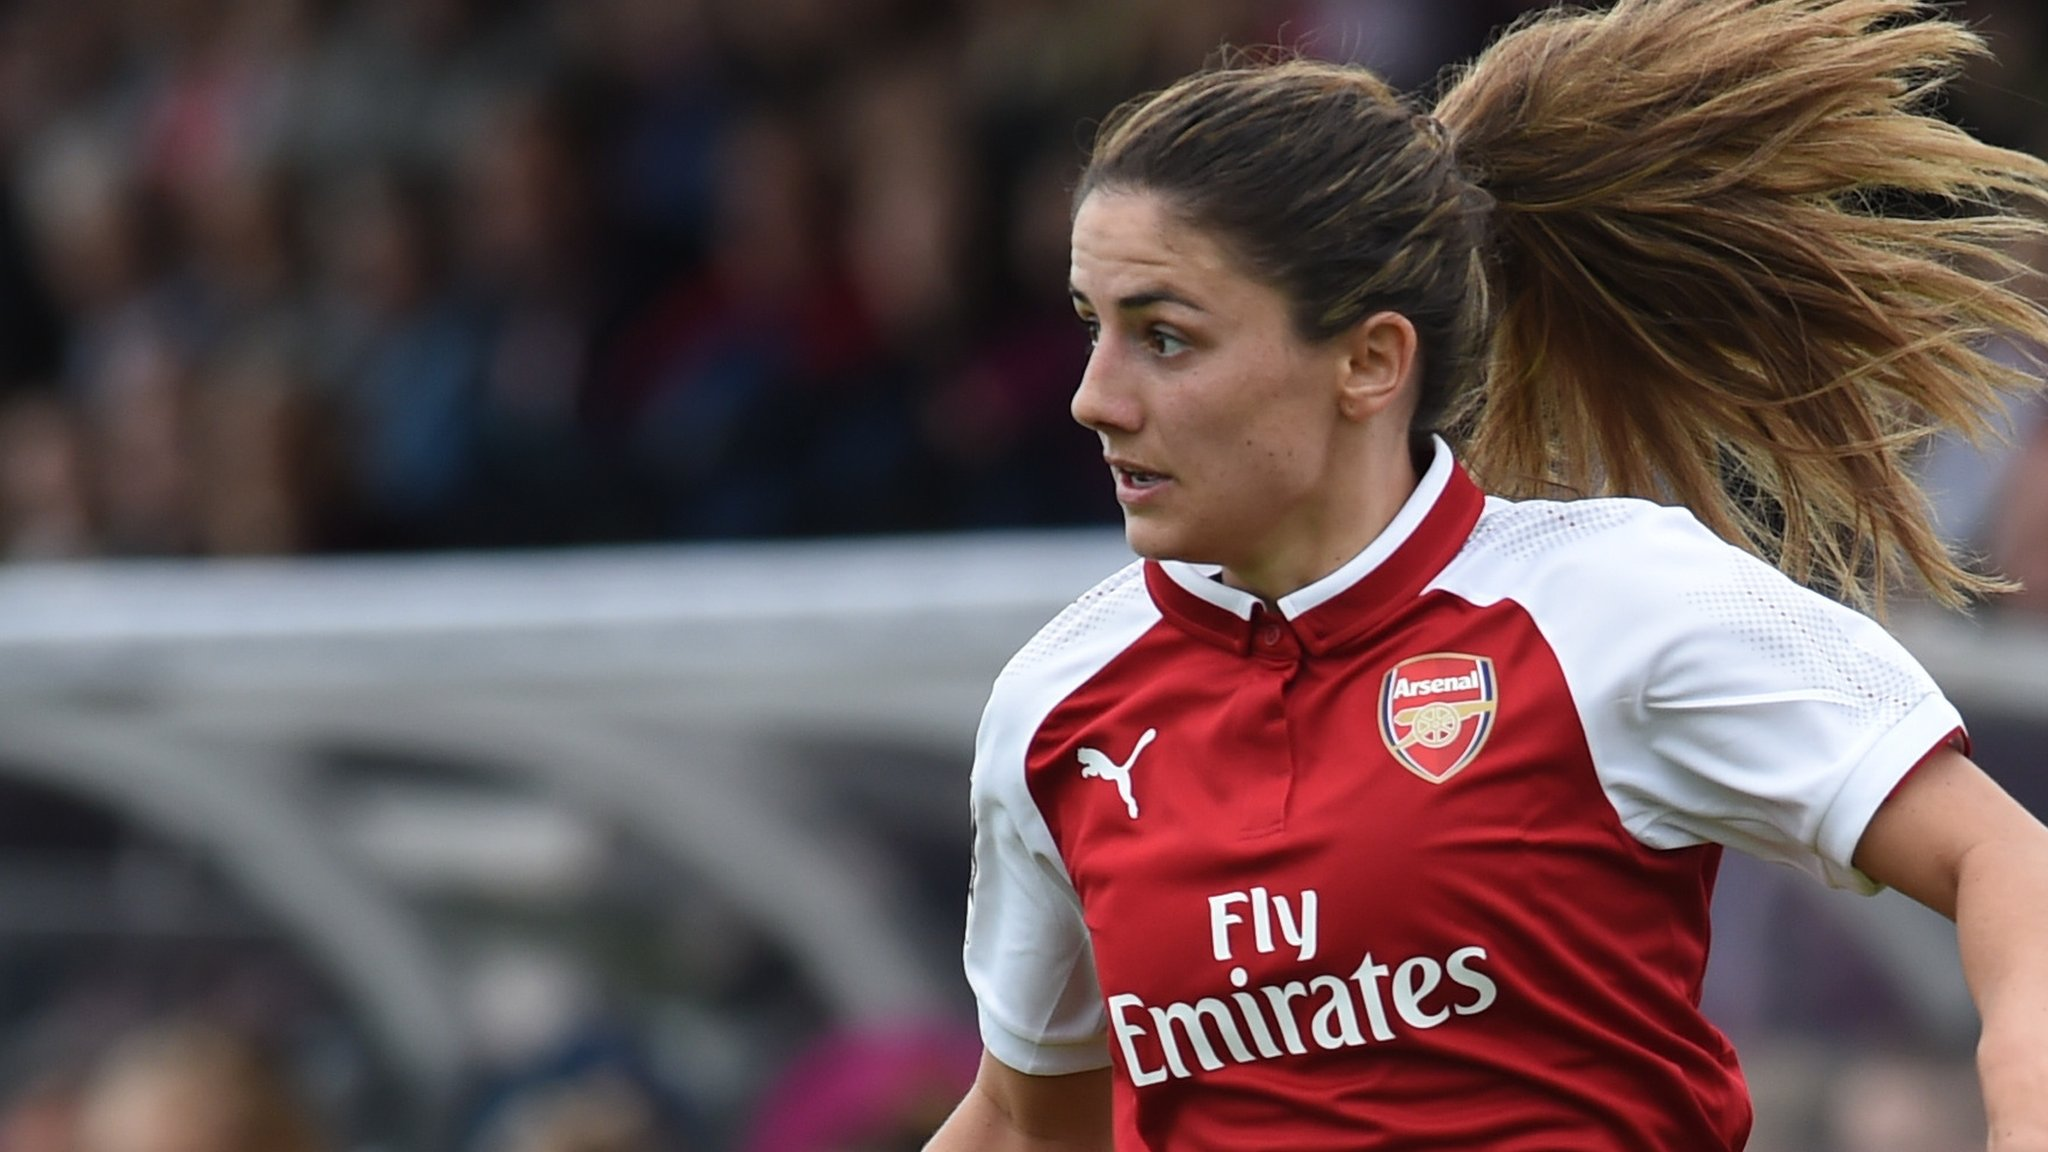 Arsenal Women: New deals for van de Donk, van Veenendaal & Janssen